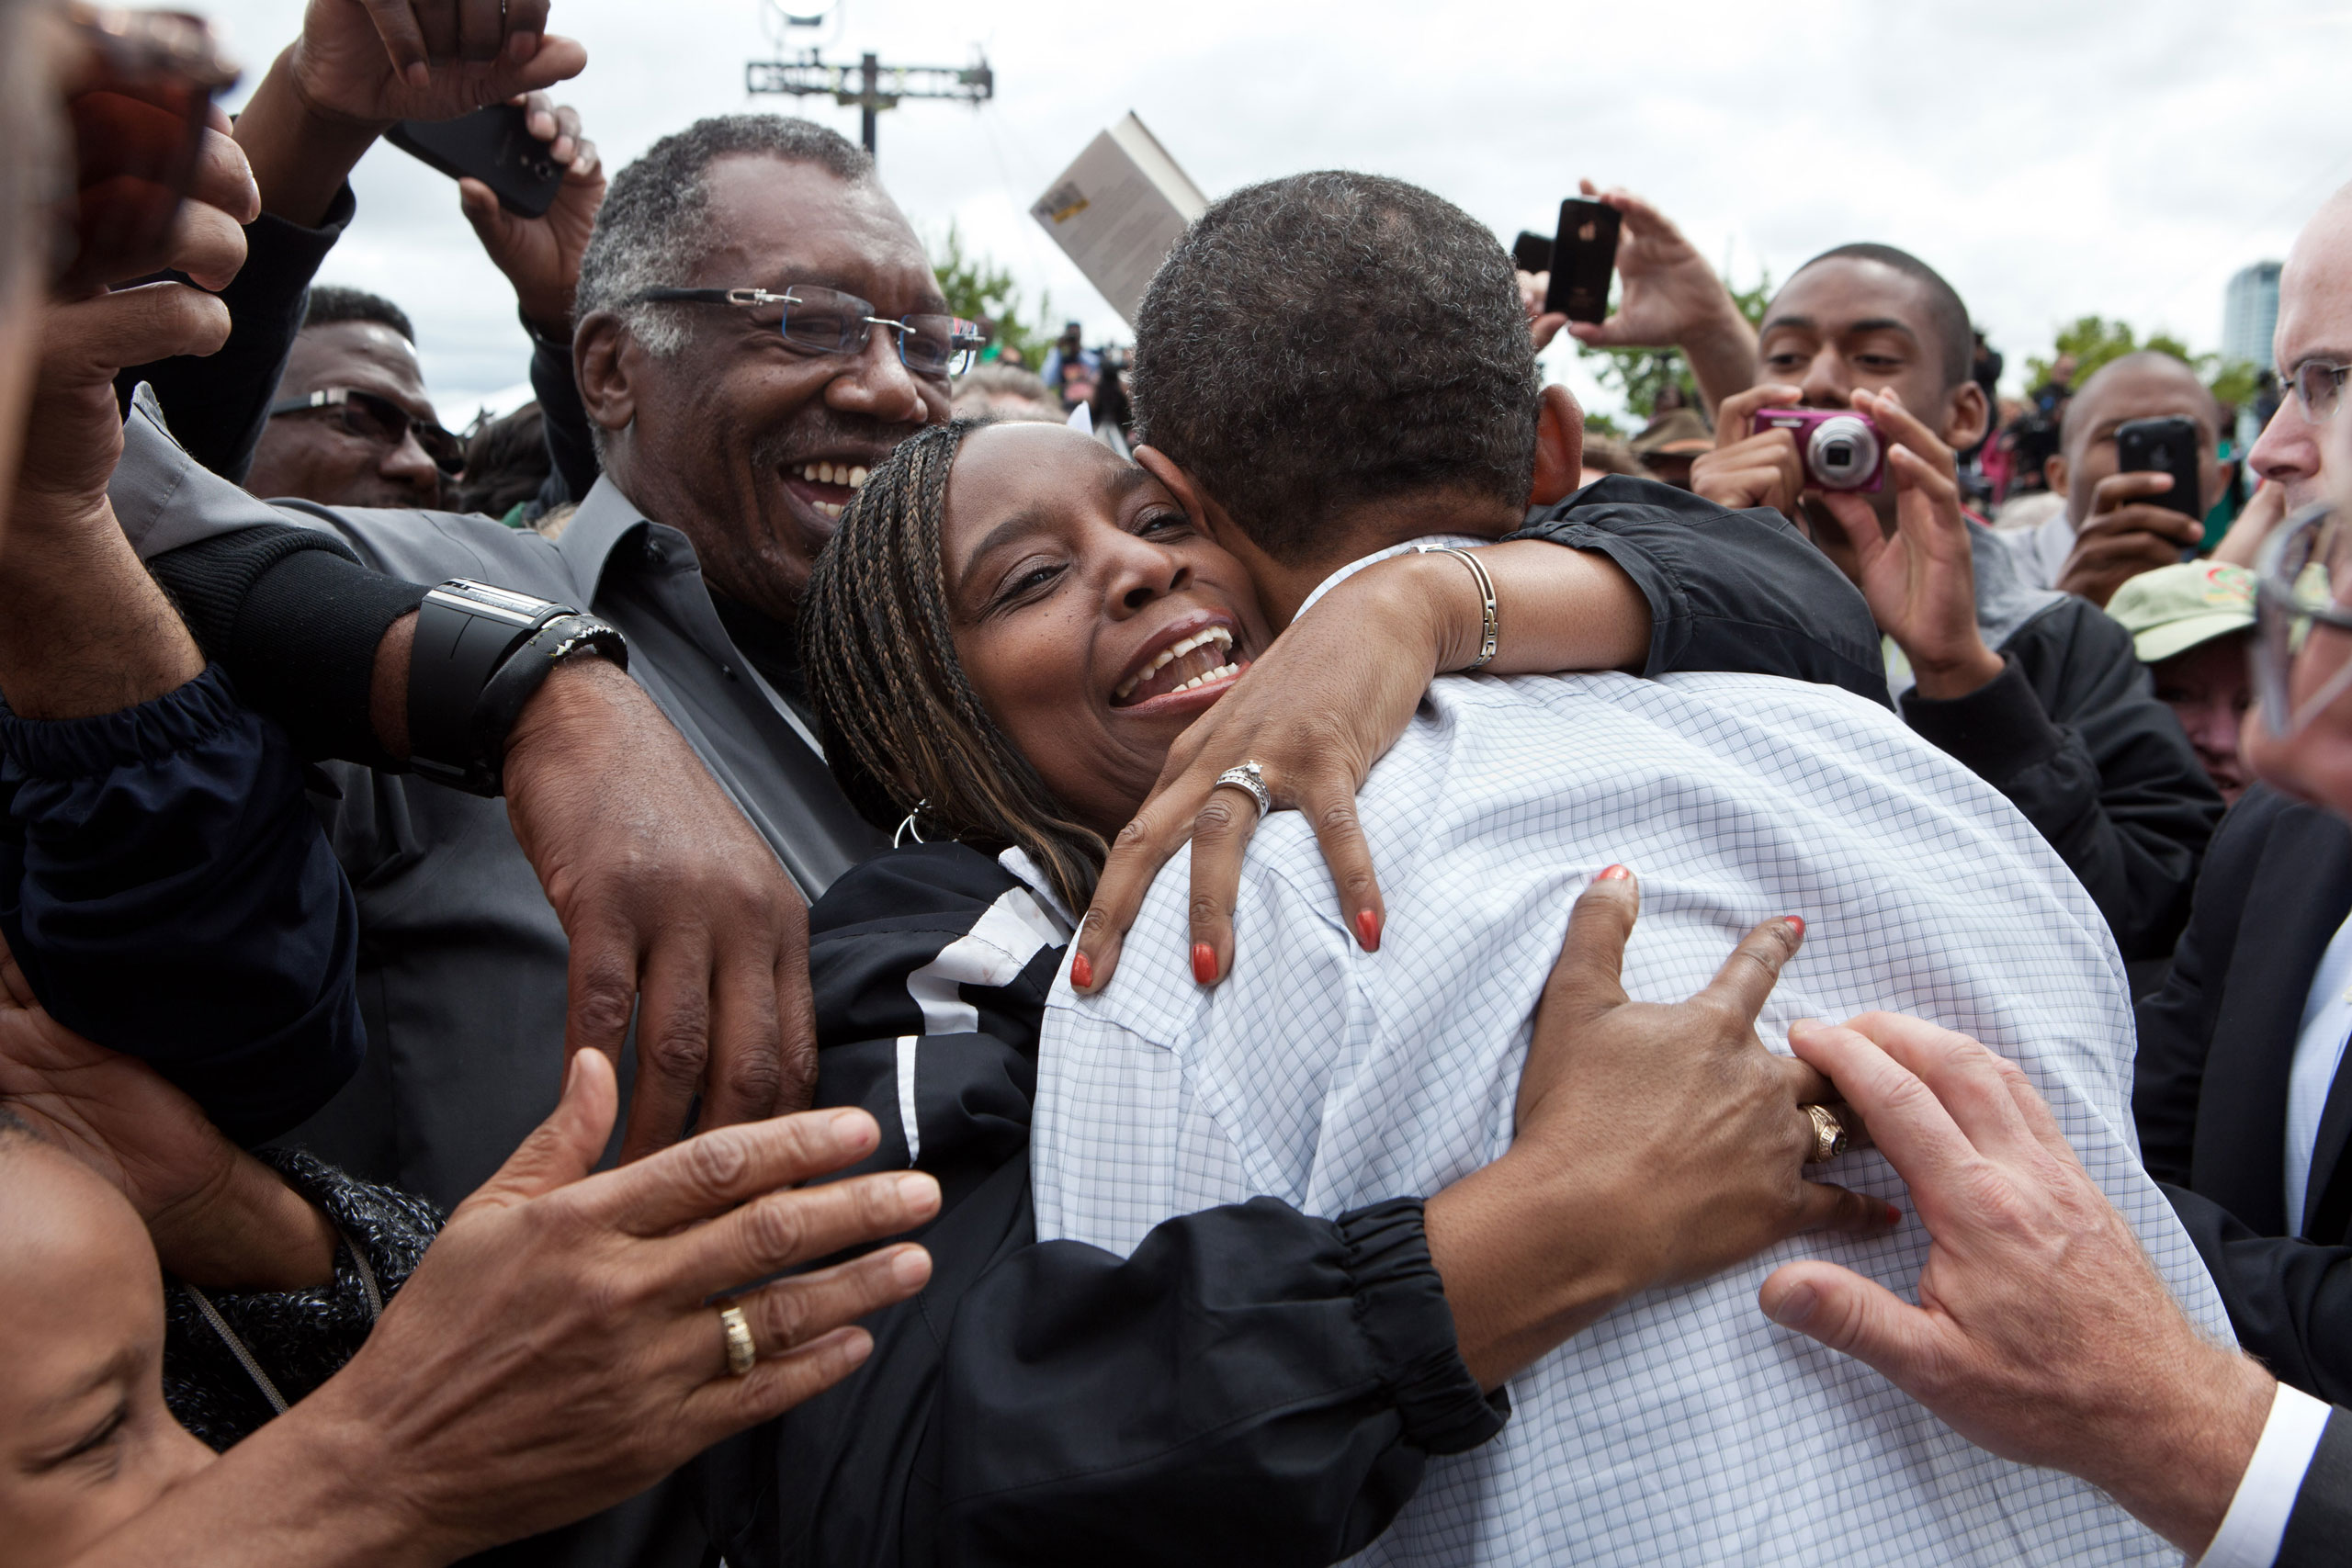 President Barack Obama hugs a woman in the crowd after addressing the Labor Day celebration in Detroit, Mich., Sept. 5, 2011.